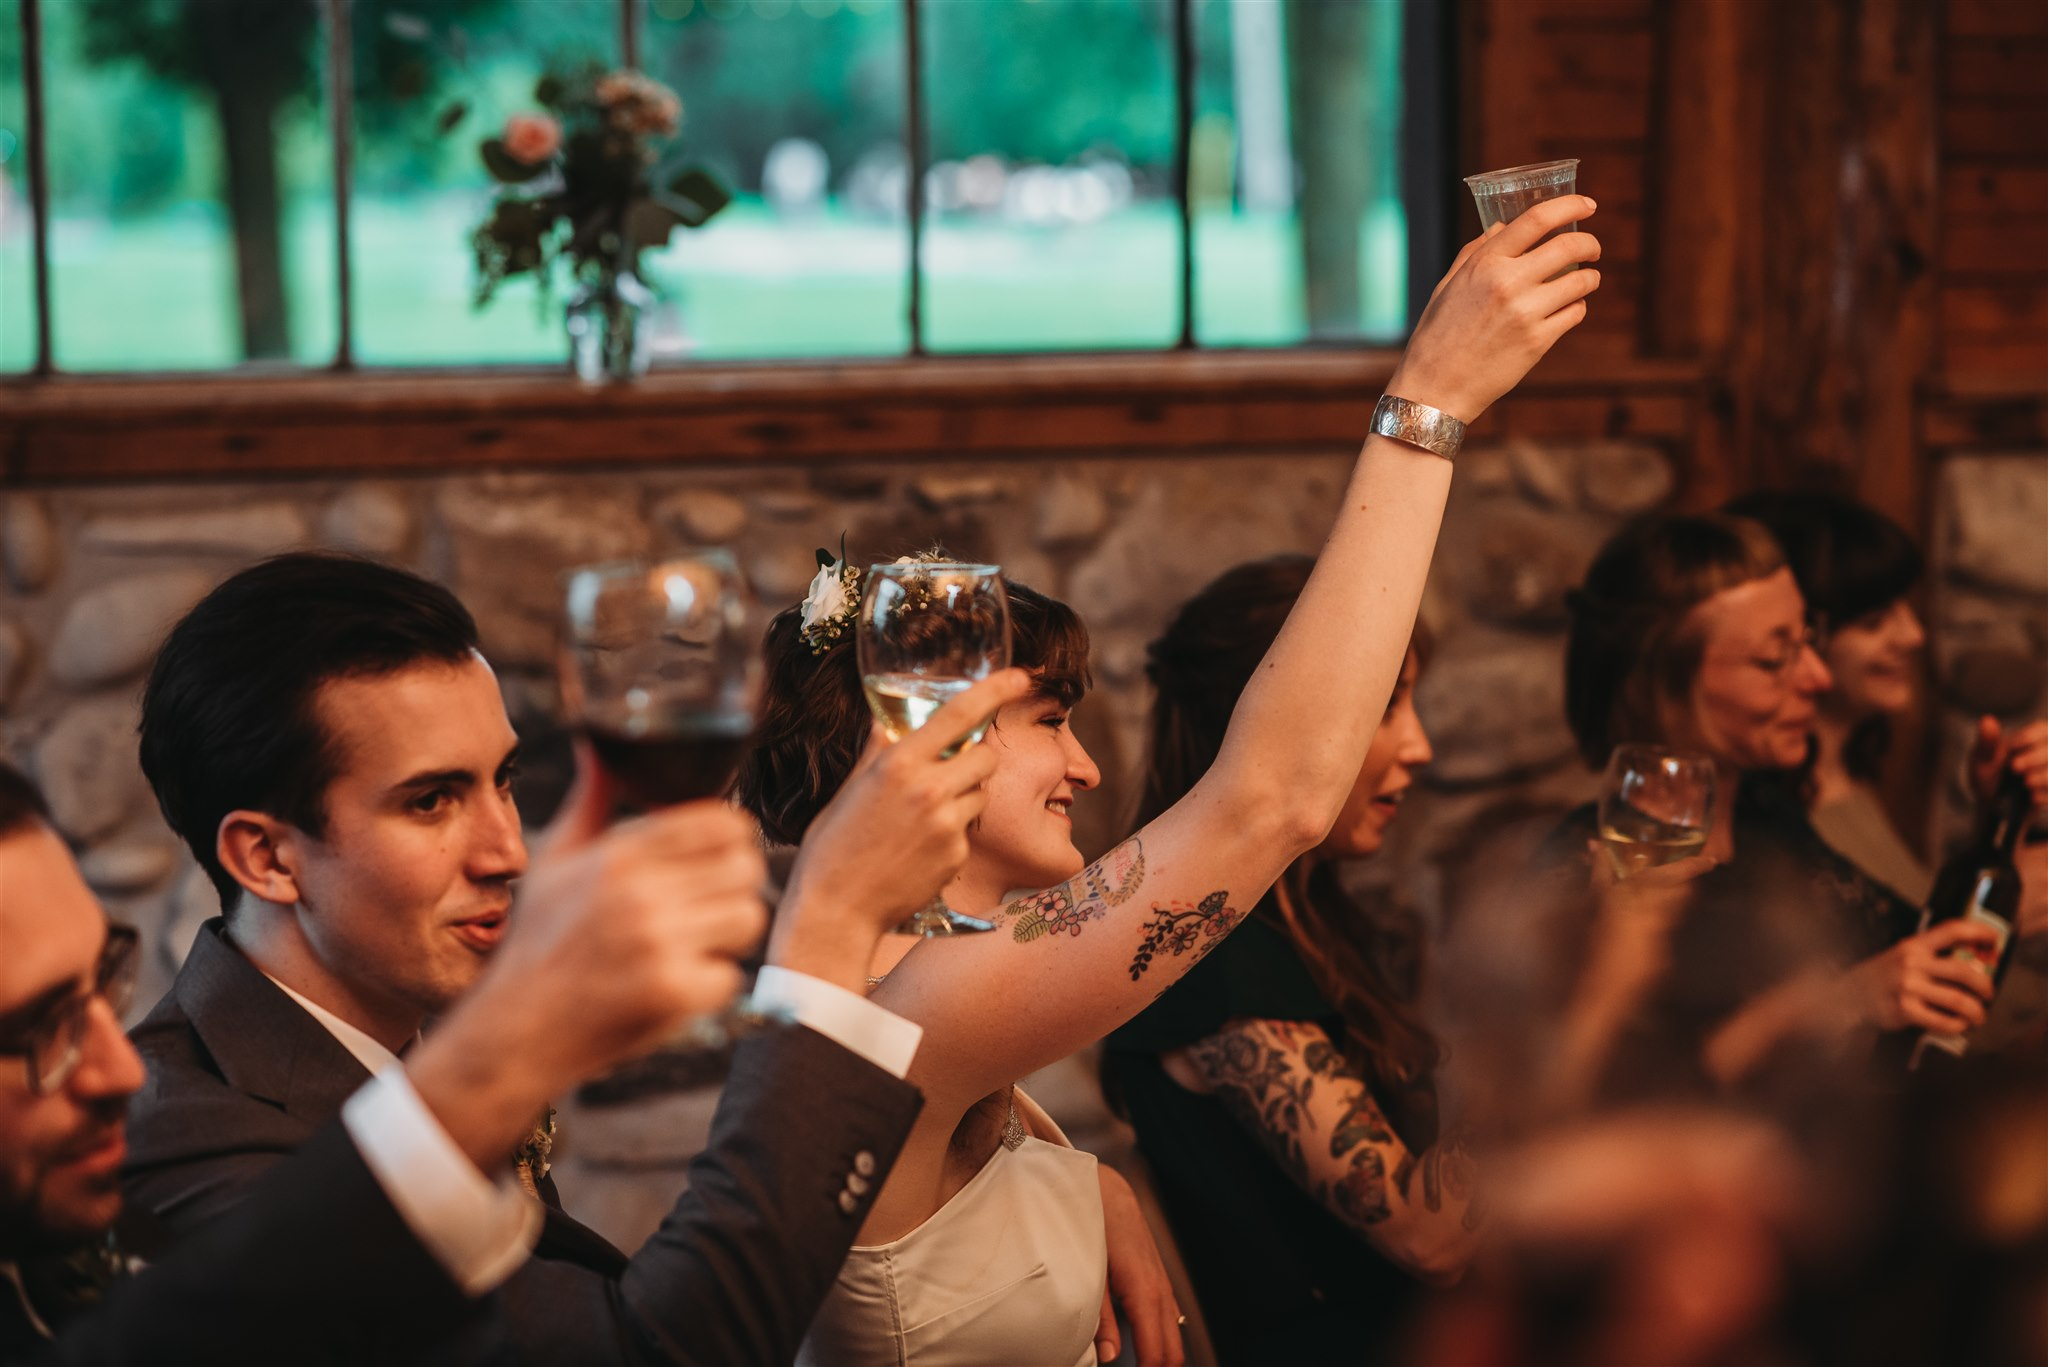 a toast from the bride and groom after speeches are done